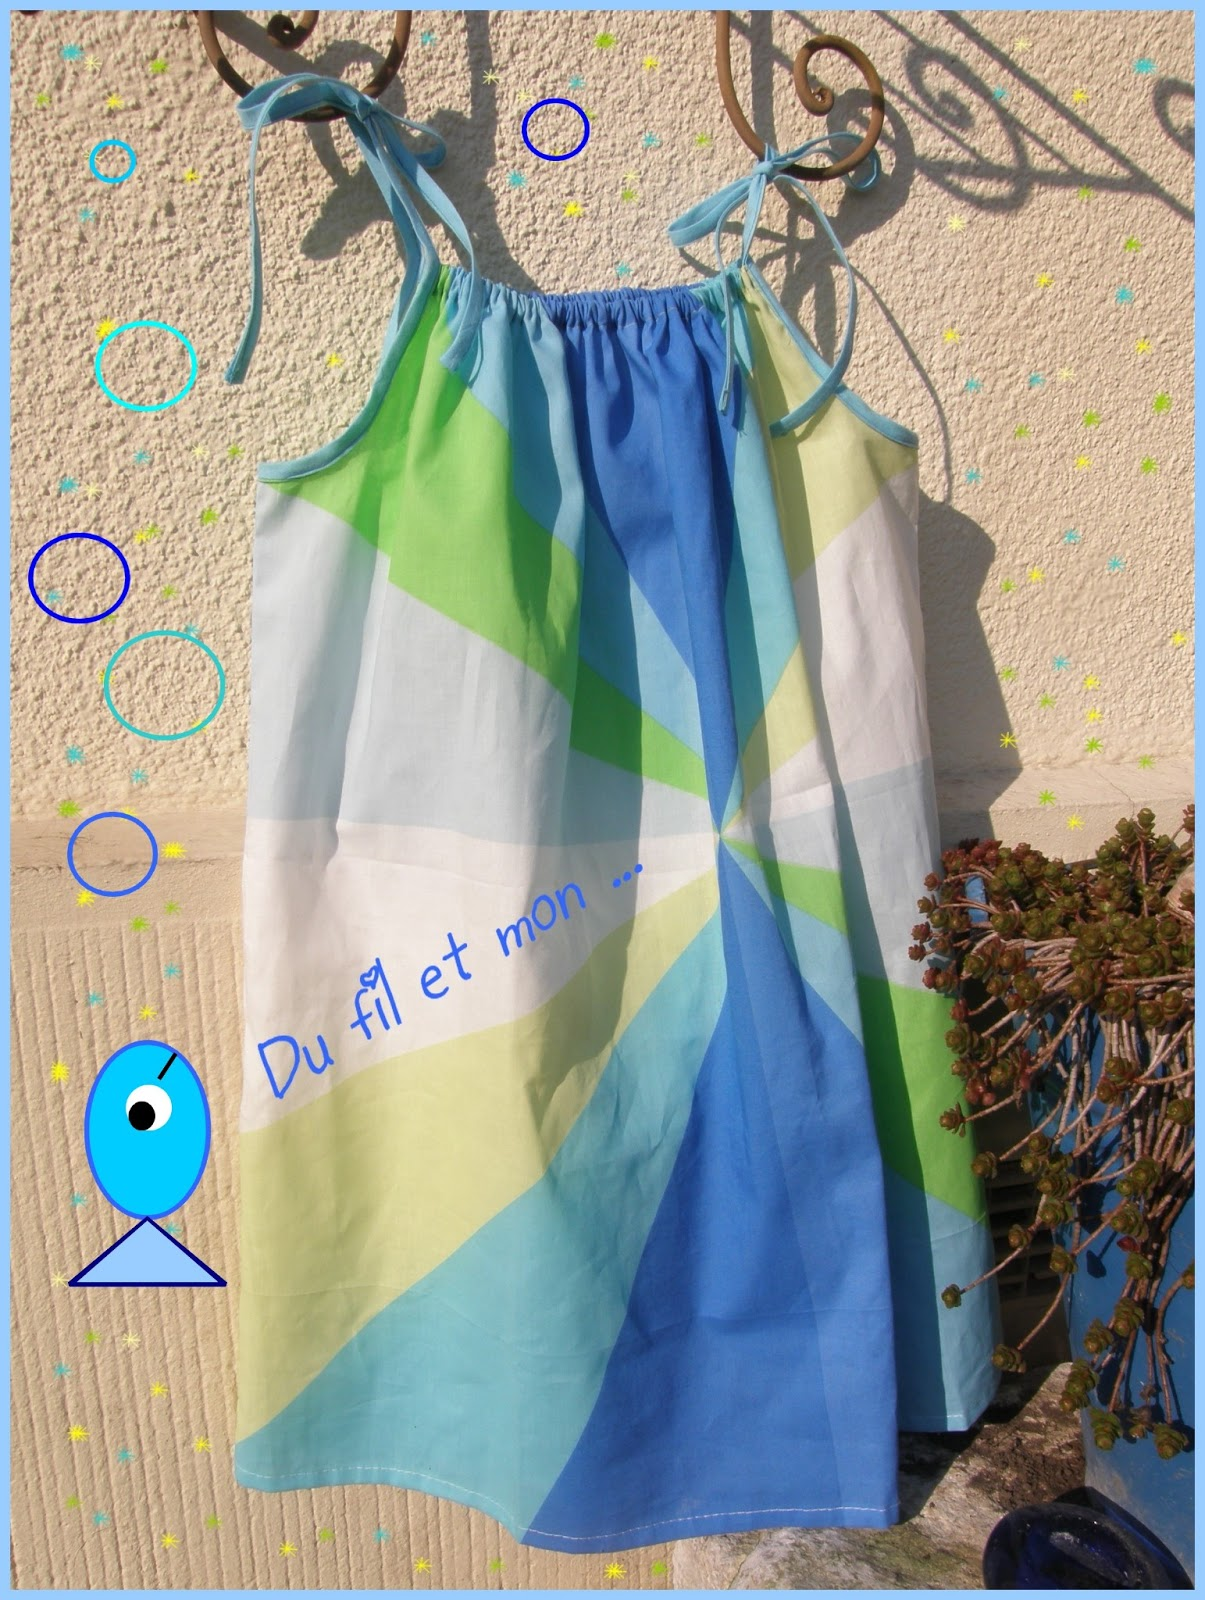 robe enfant taie d oreiller recyclee